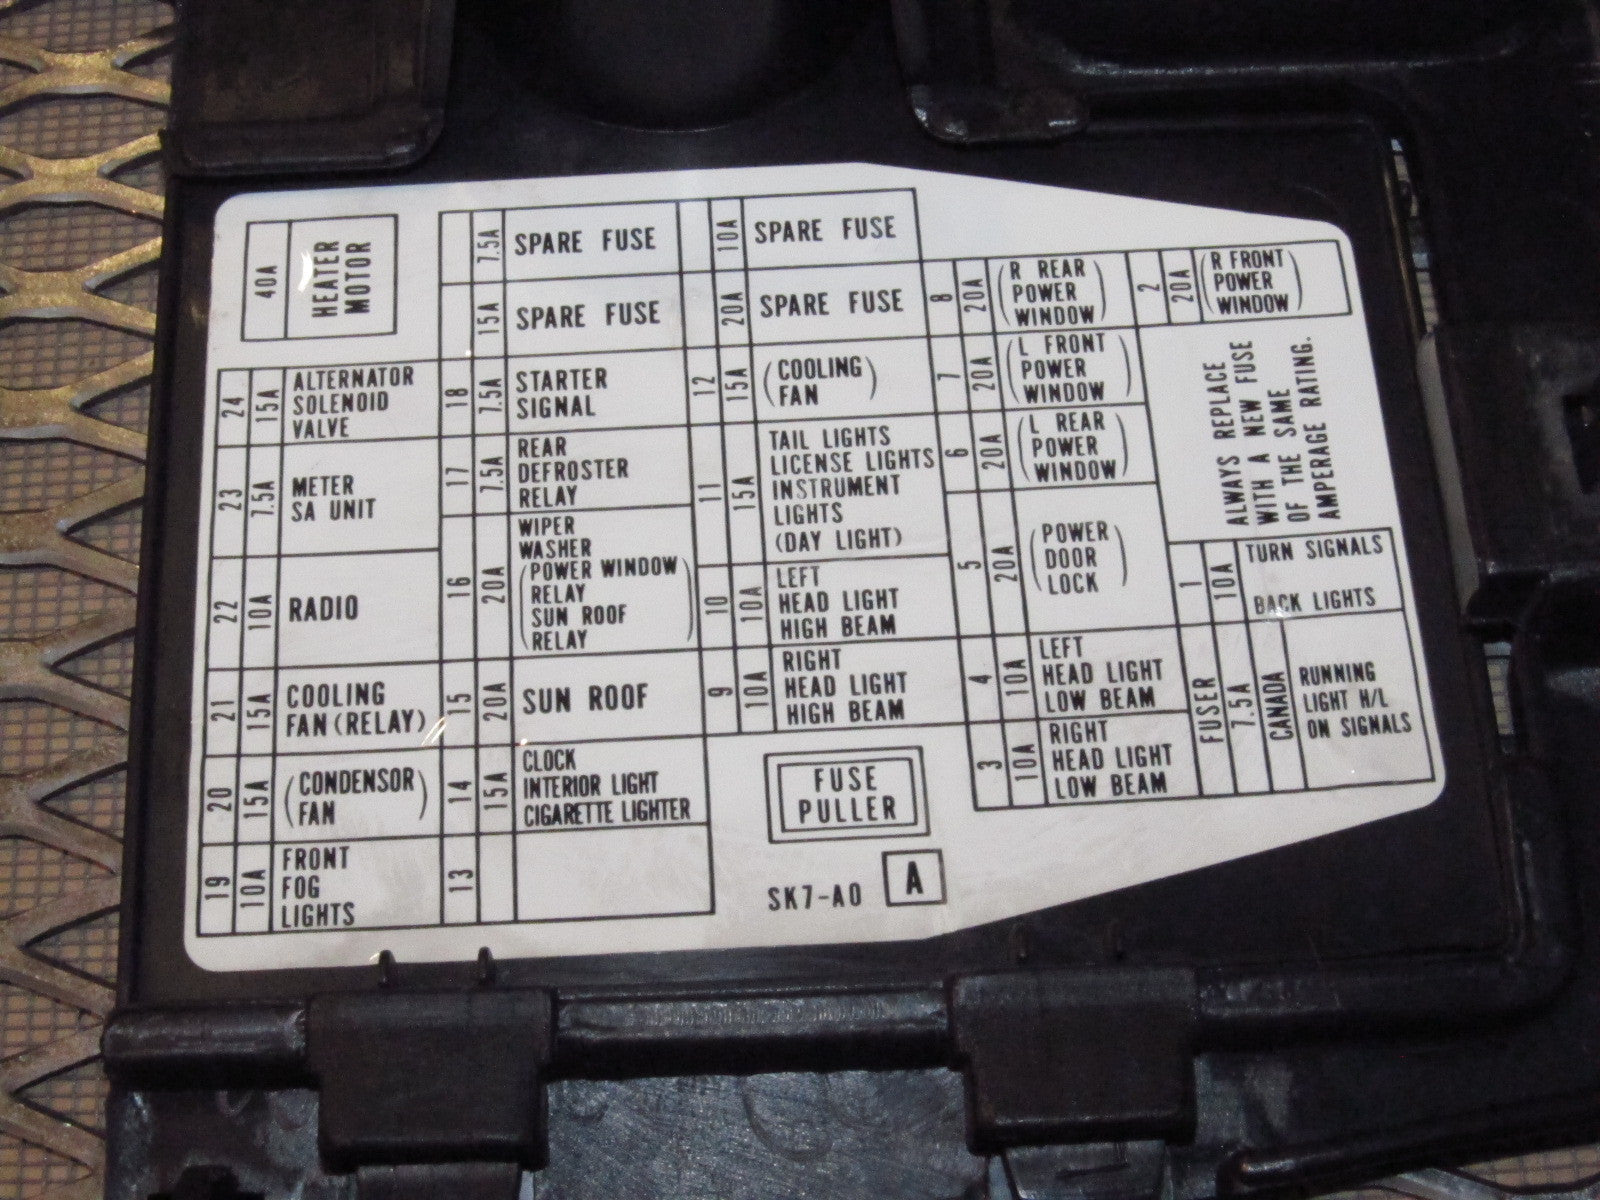 90 93 integra fuse box wiring diagrams best 93 integra fuse box diagram wiring diagram data rl fuse box 90 93 integra fuse box